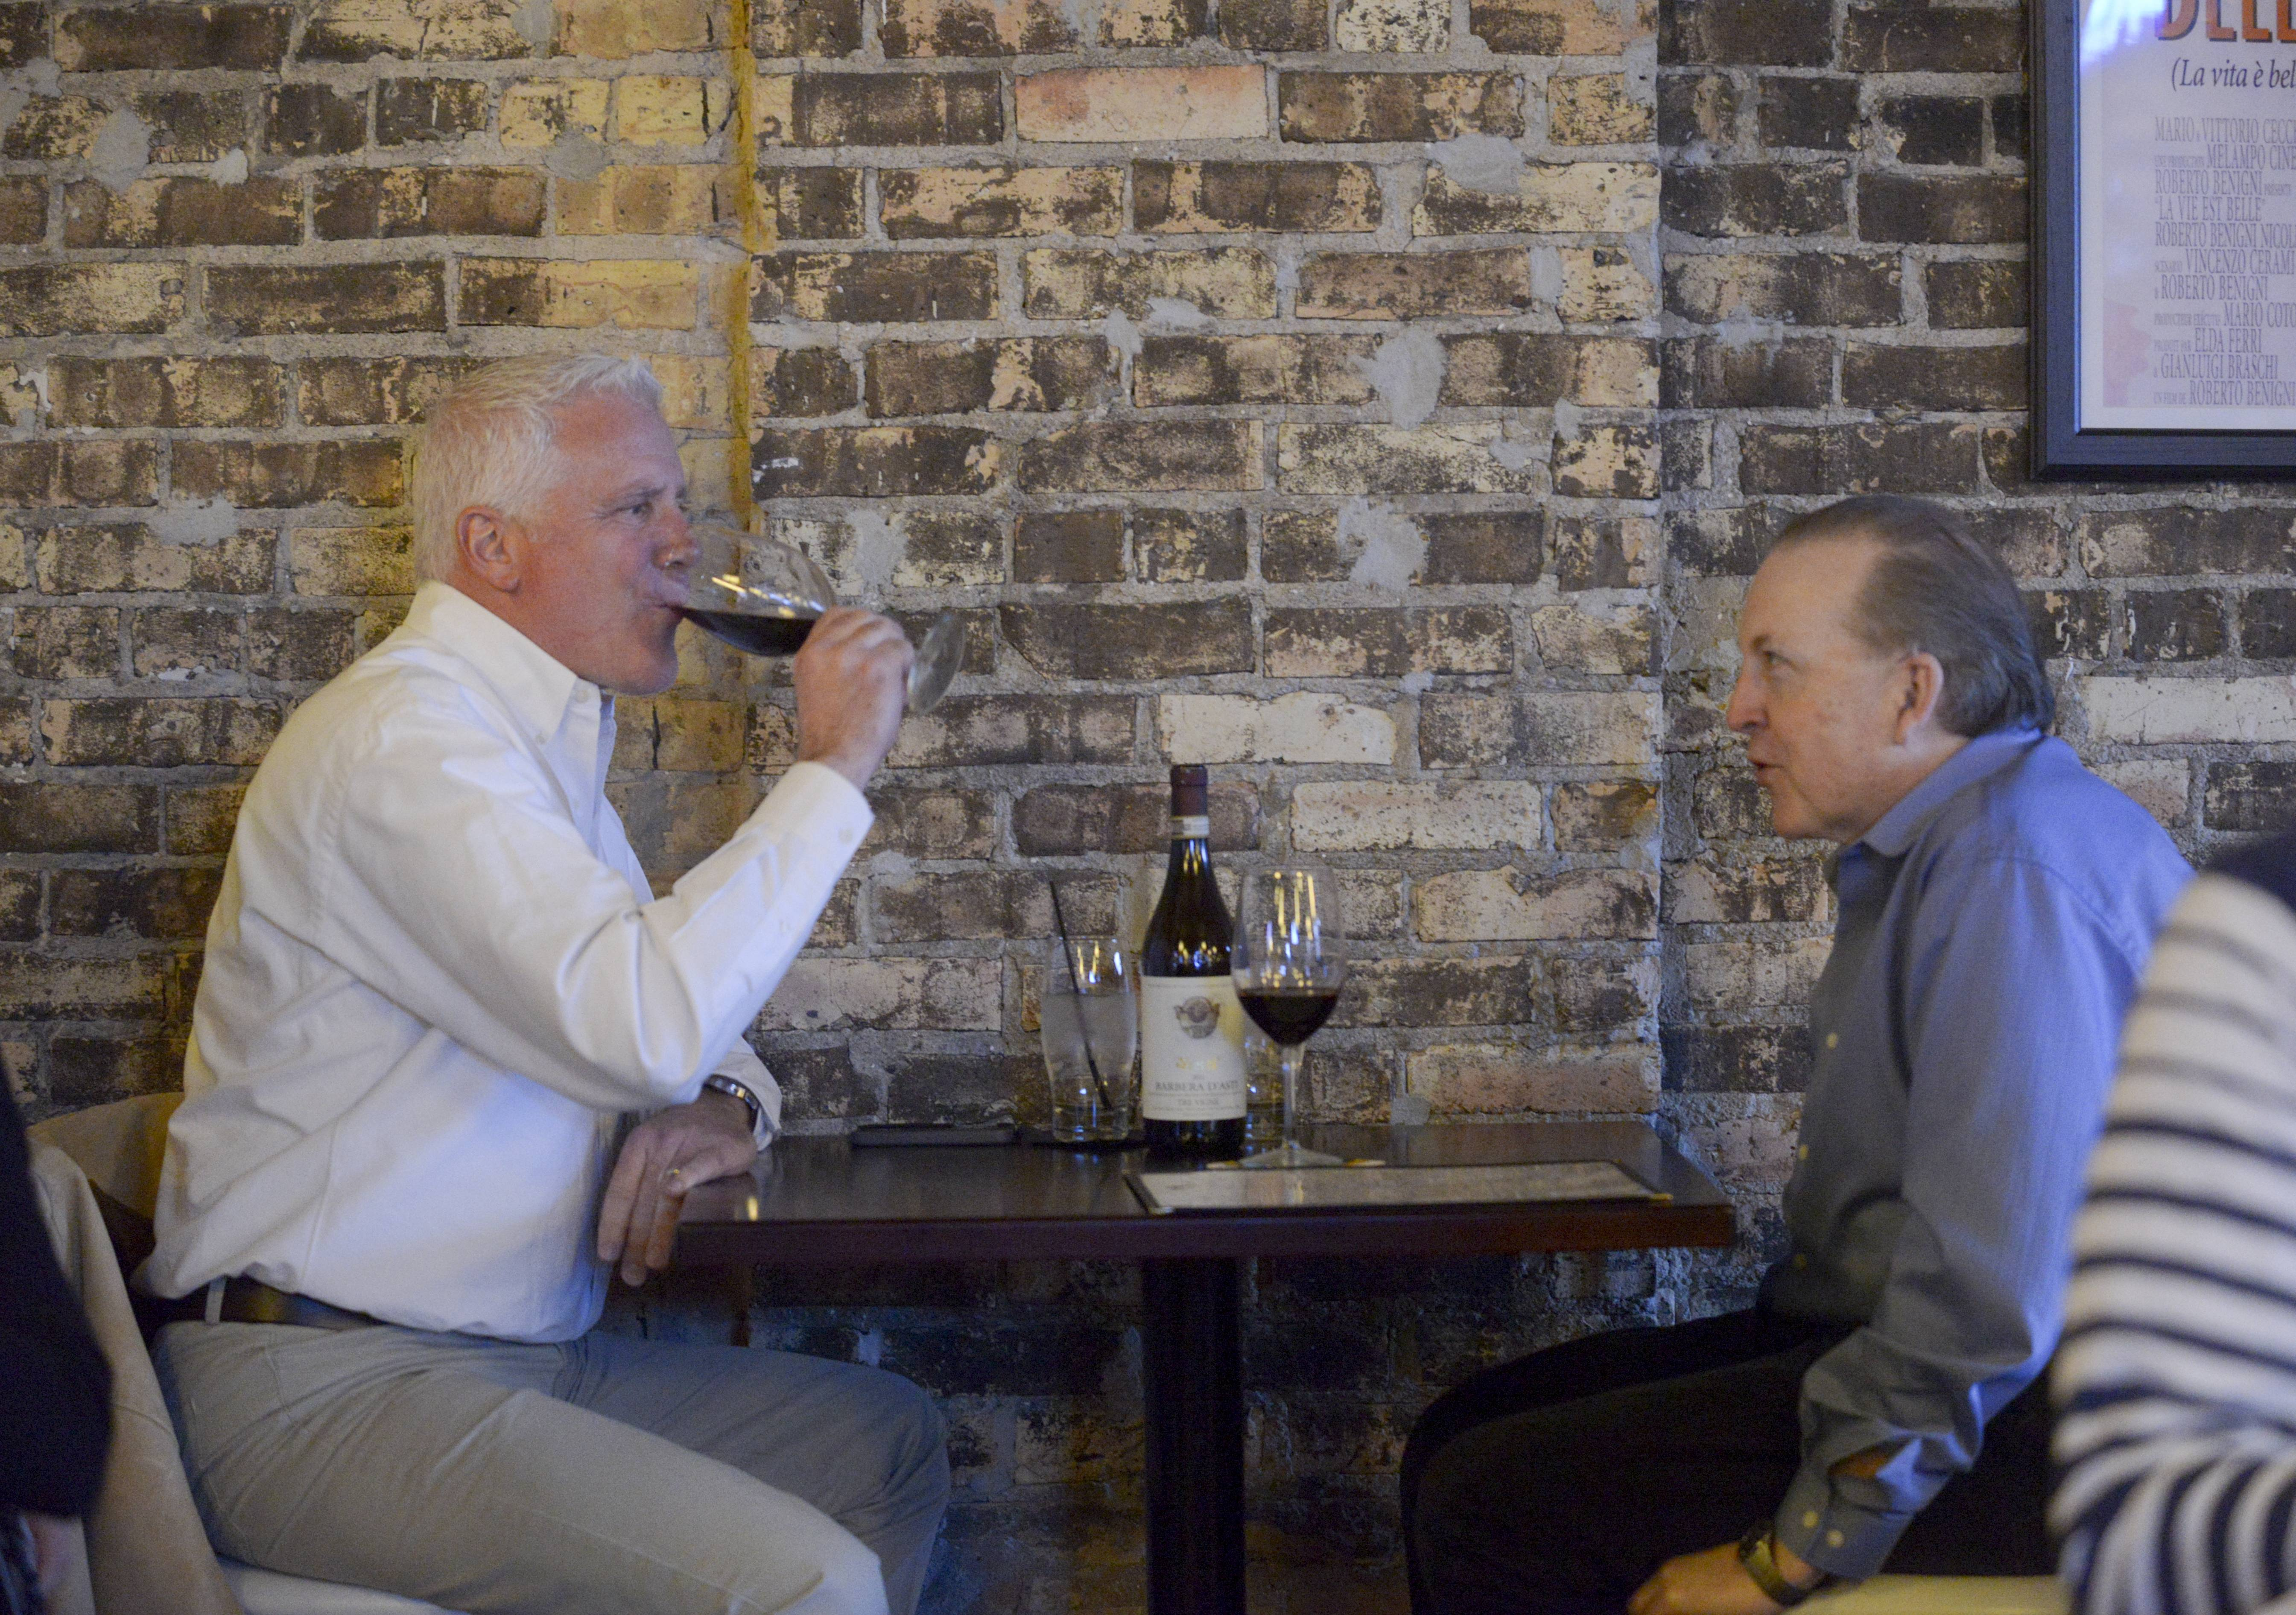 John DiBuono, left, of Elgin and Ed Culleeney of Palatine talk over glasses of wine at 1913 Restaurant and Wine Bar in Roselle.